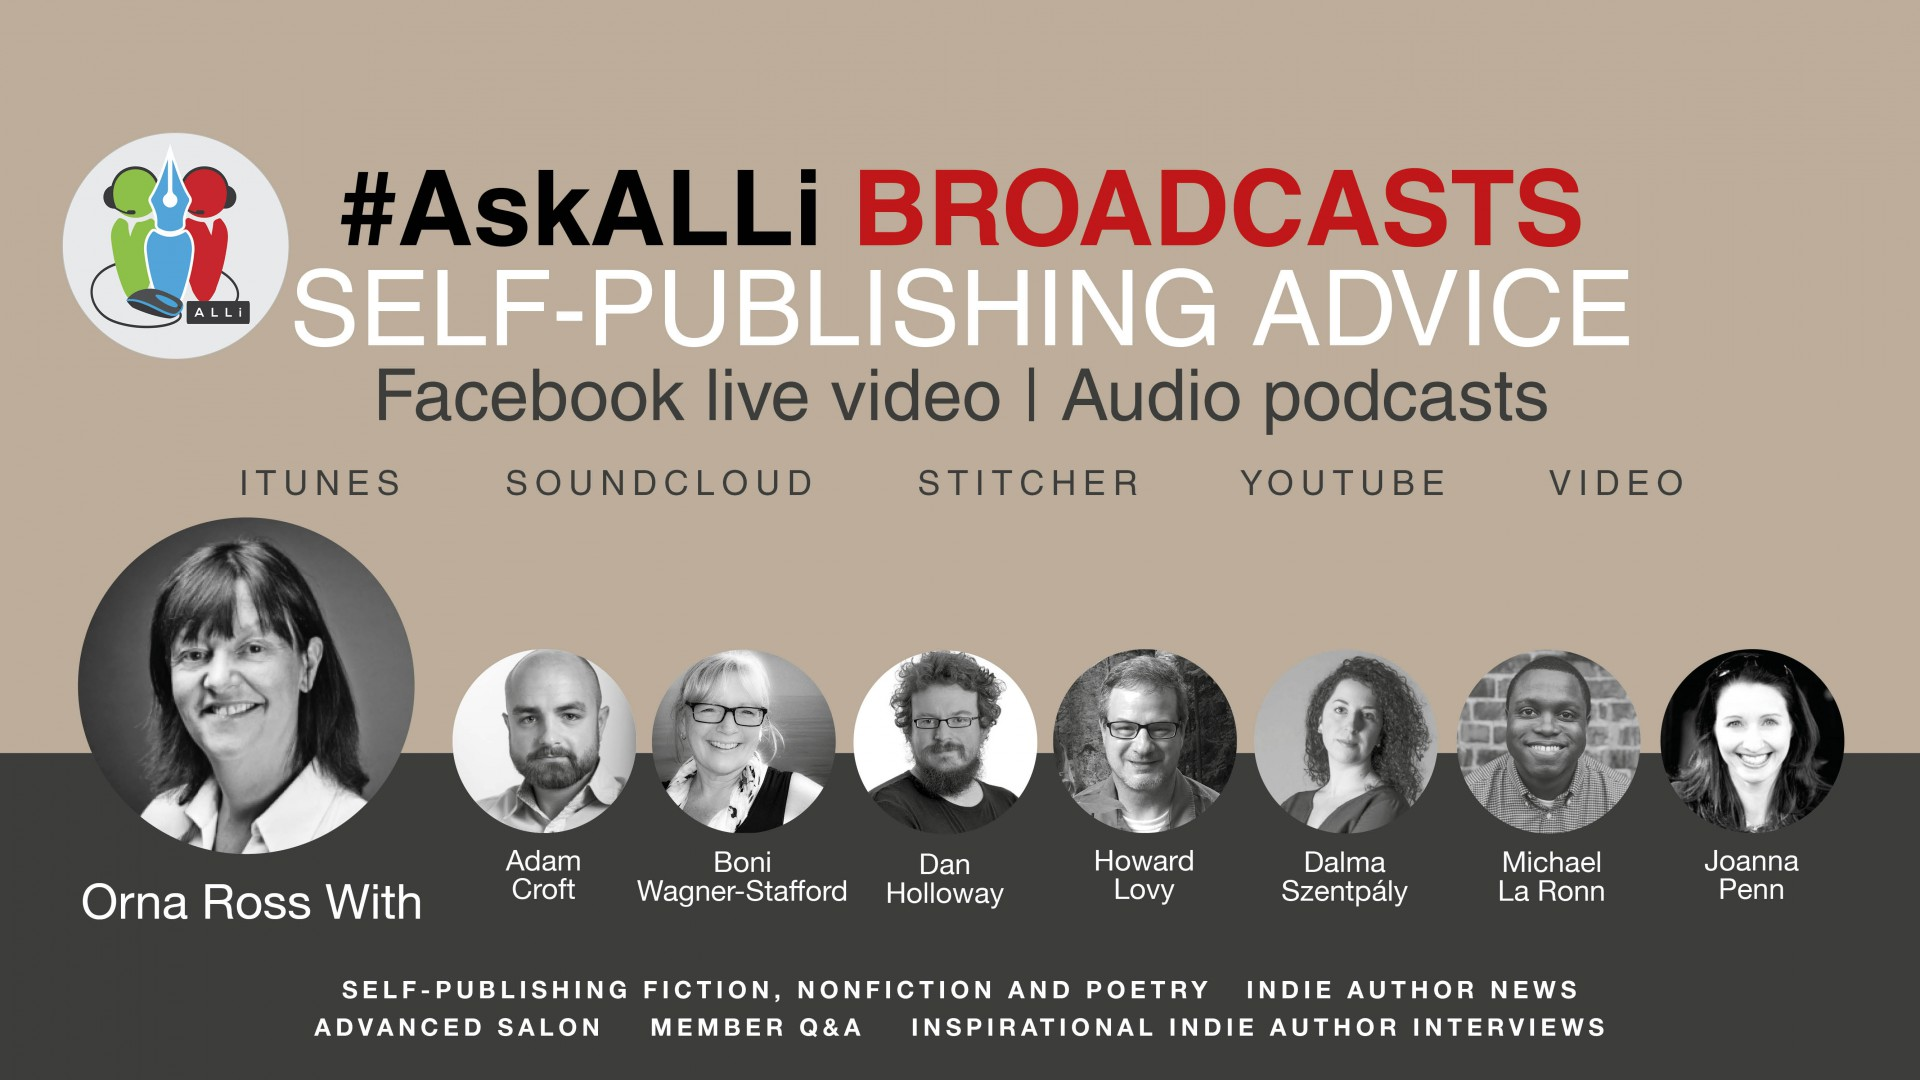 AskALLi Podcasts: Our Self-Publishing Weekly Broadcasts - Alliance